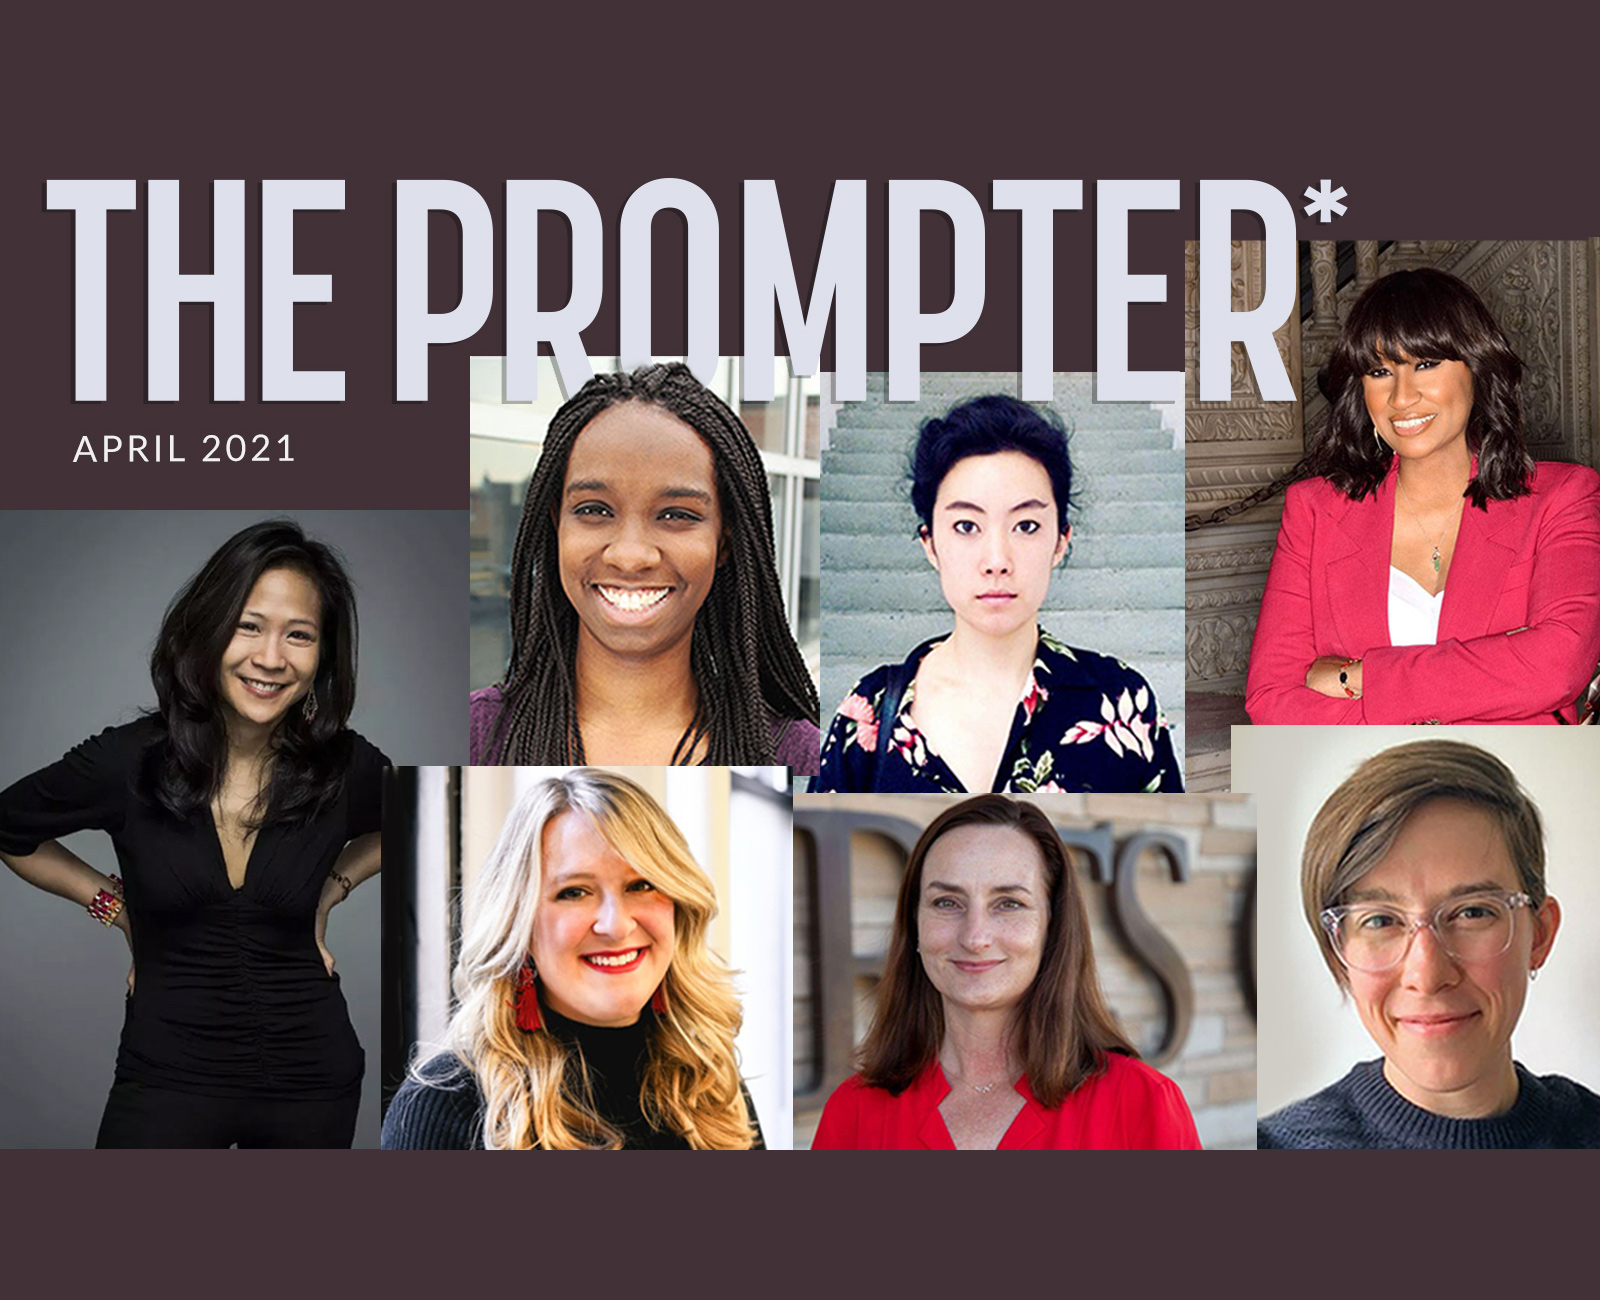 The Prompter - April 2021